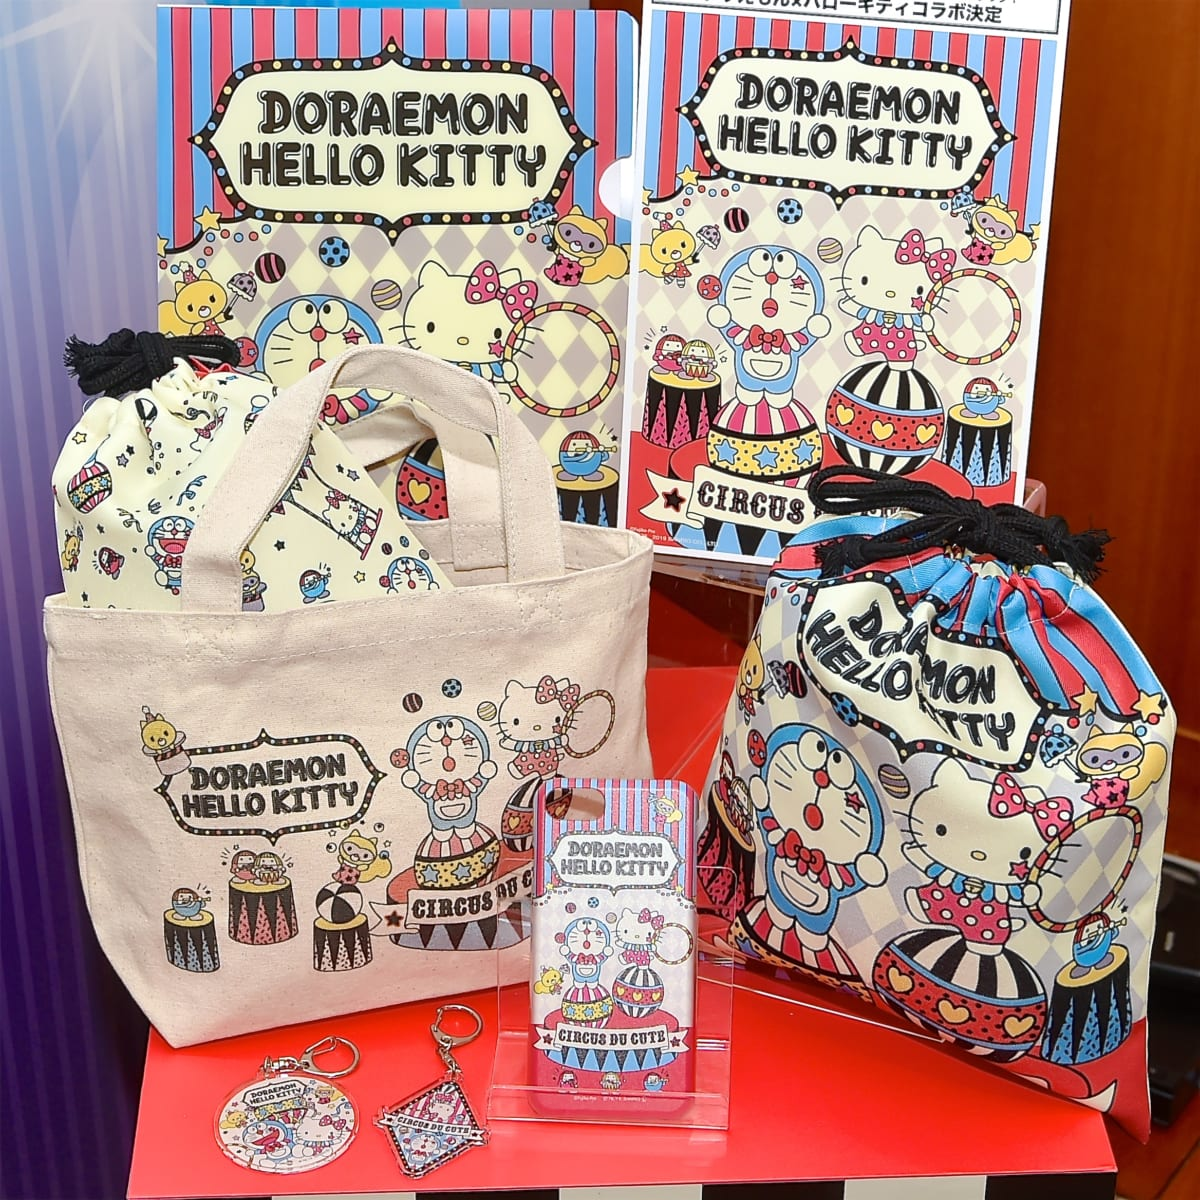 「DORAEMON × HELLO KITTY」2